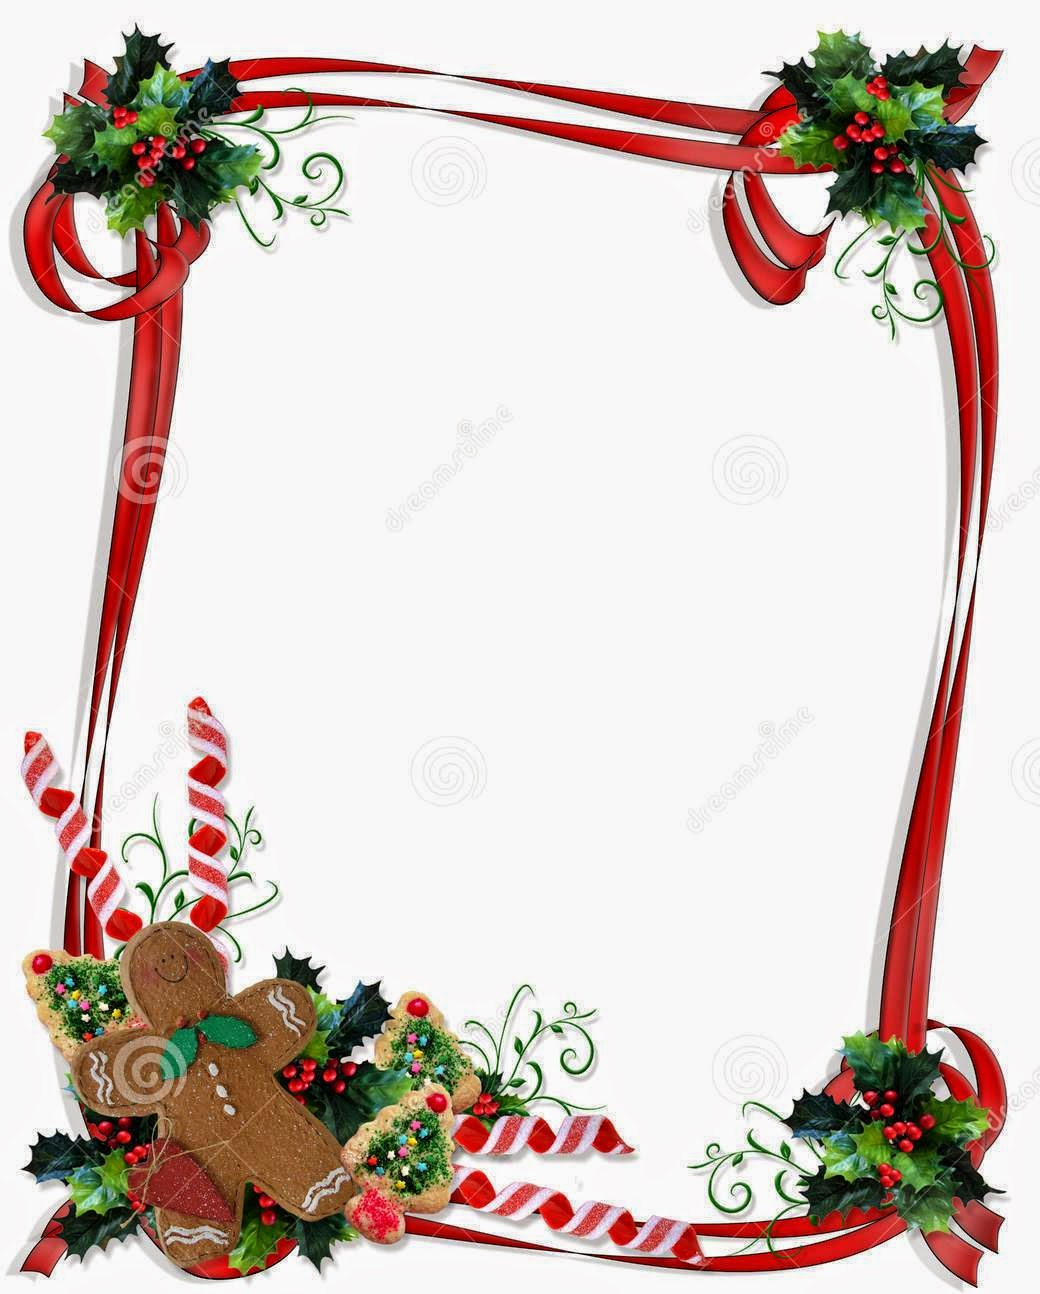 Christmas clipart templates free png stock Best Free Christmas Clipart For Mac #22811 - Clipartion.com png stock